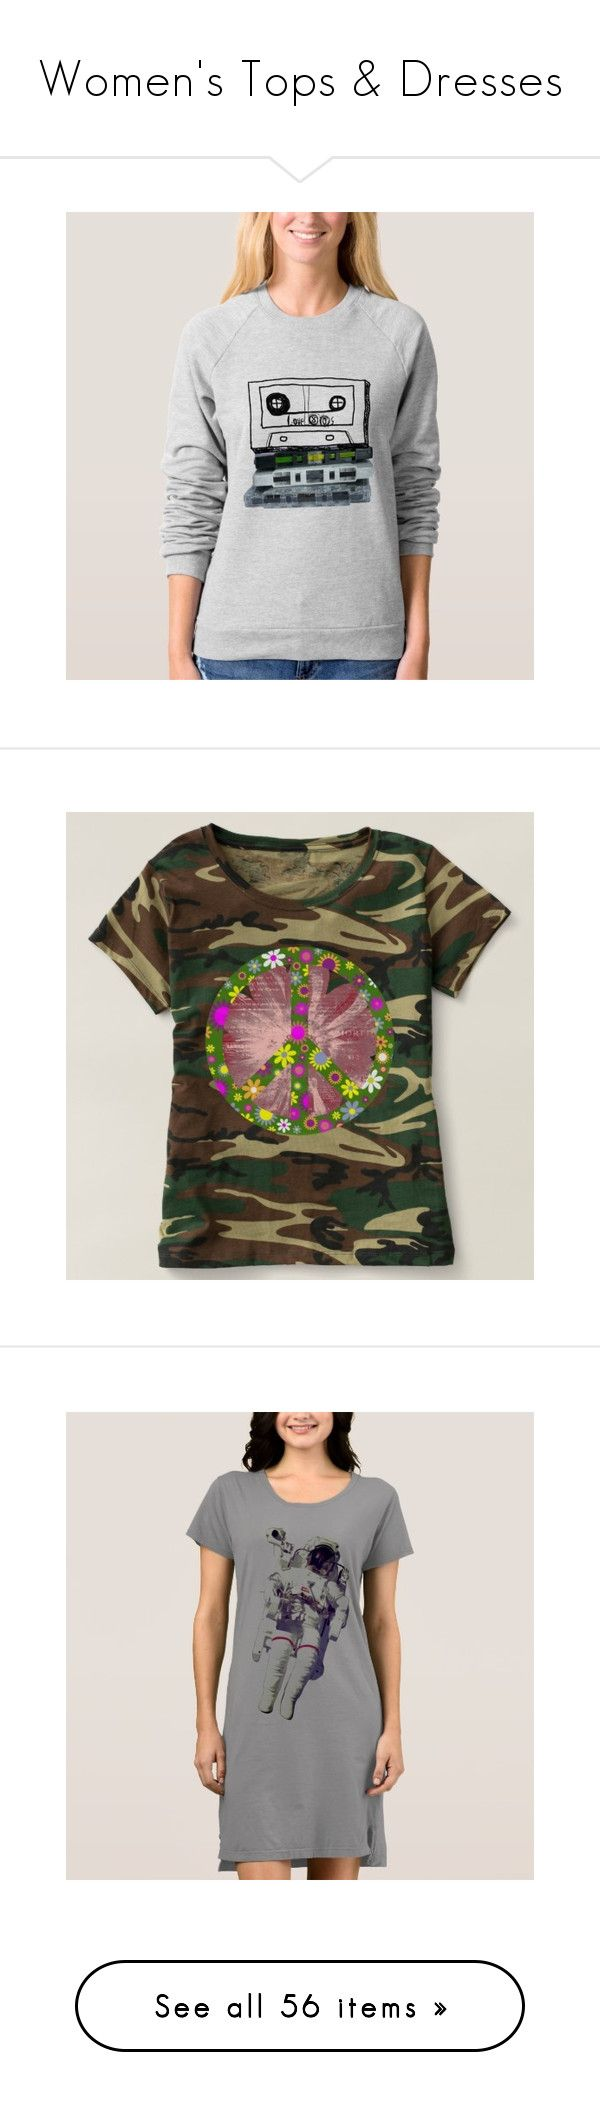 """""""Women's Tops & Dresses"""" by ubm-store ❤ liked on Polyvore featuring tops, t-shirts, peace sign t shirts, geo tee, camouflage tee, camo top, camoflage t shirt, pink t shirt, raglan sleeve t shirt and raglan top"""